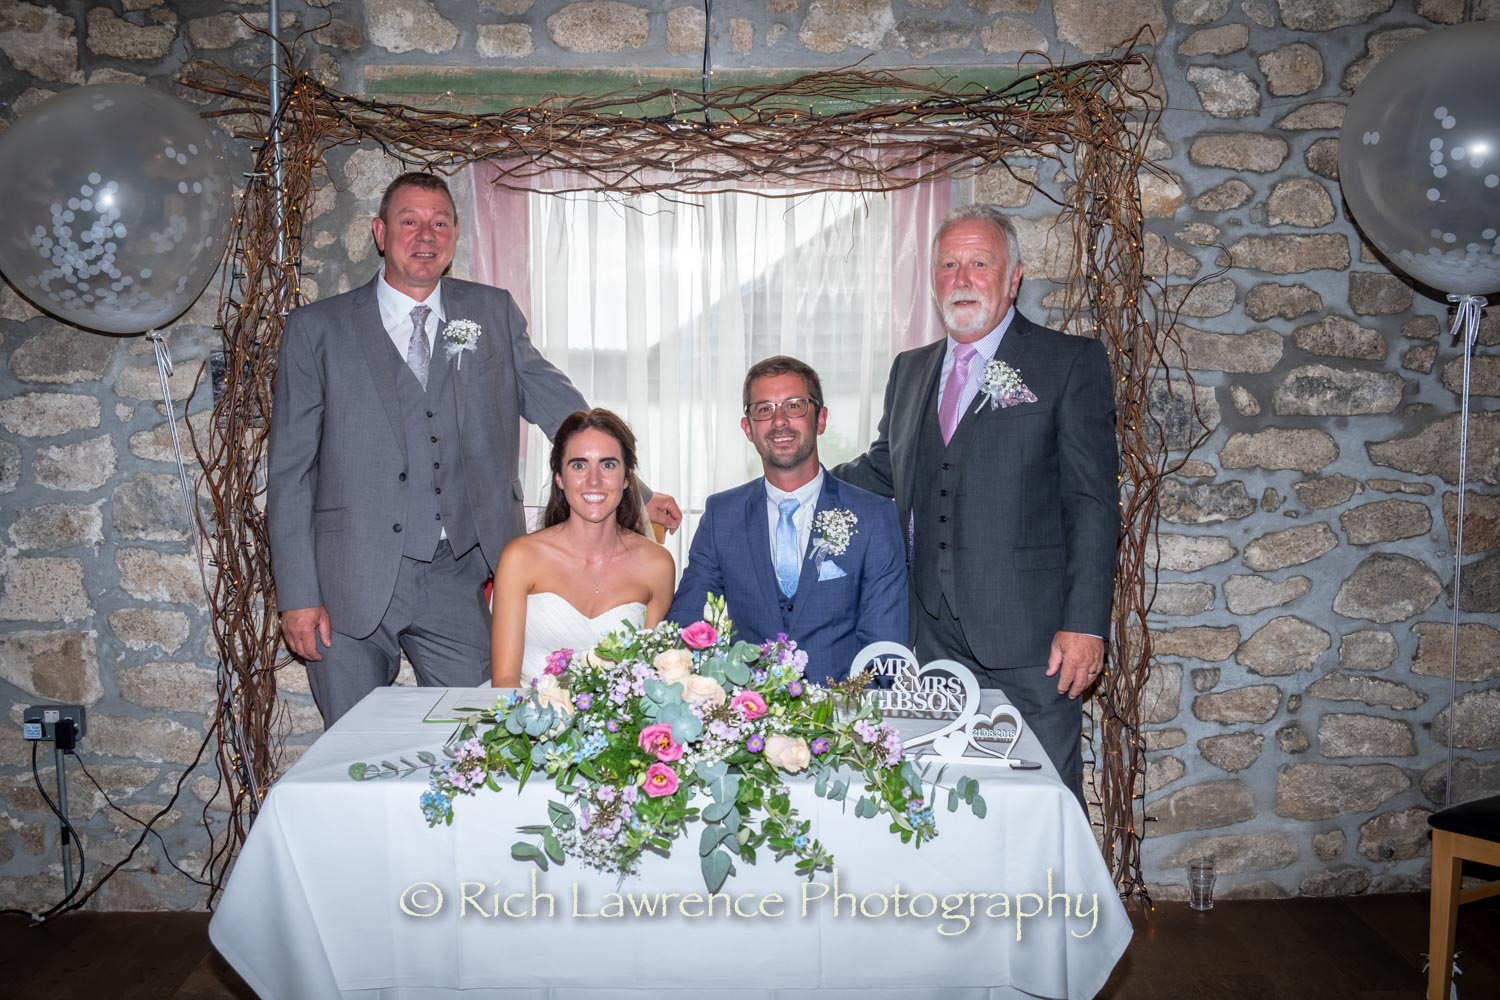 bride, groom and witnesses pose